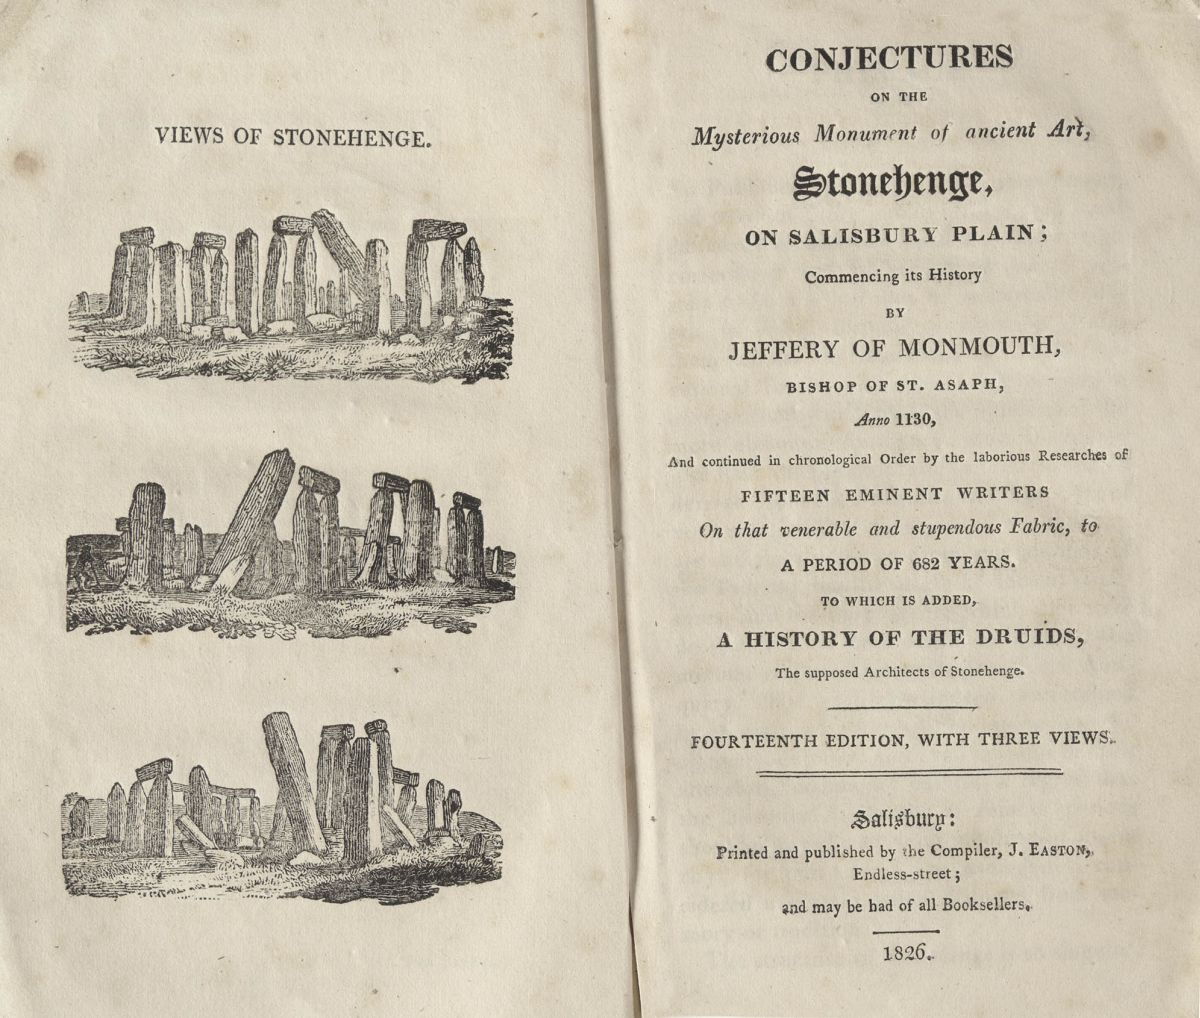 Conjectures on the mysterious monument of ancient art, Stonehenge, on Salisbury Plain, published in 1826.